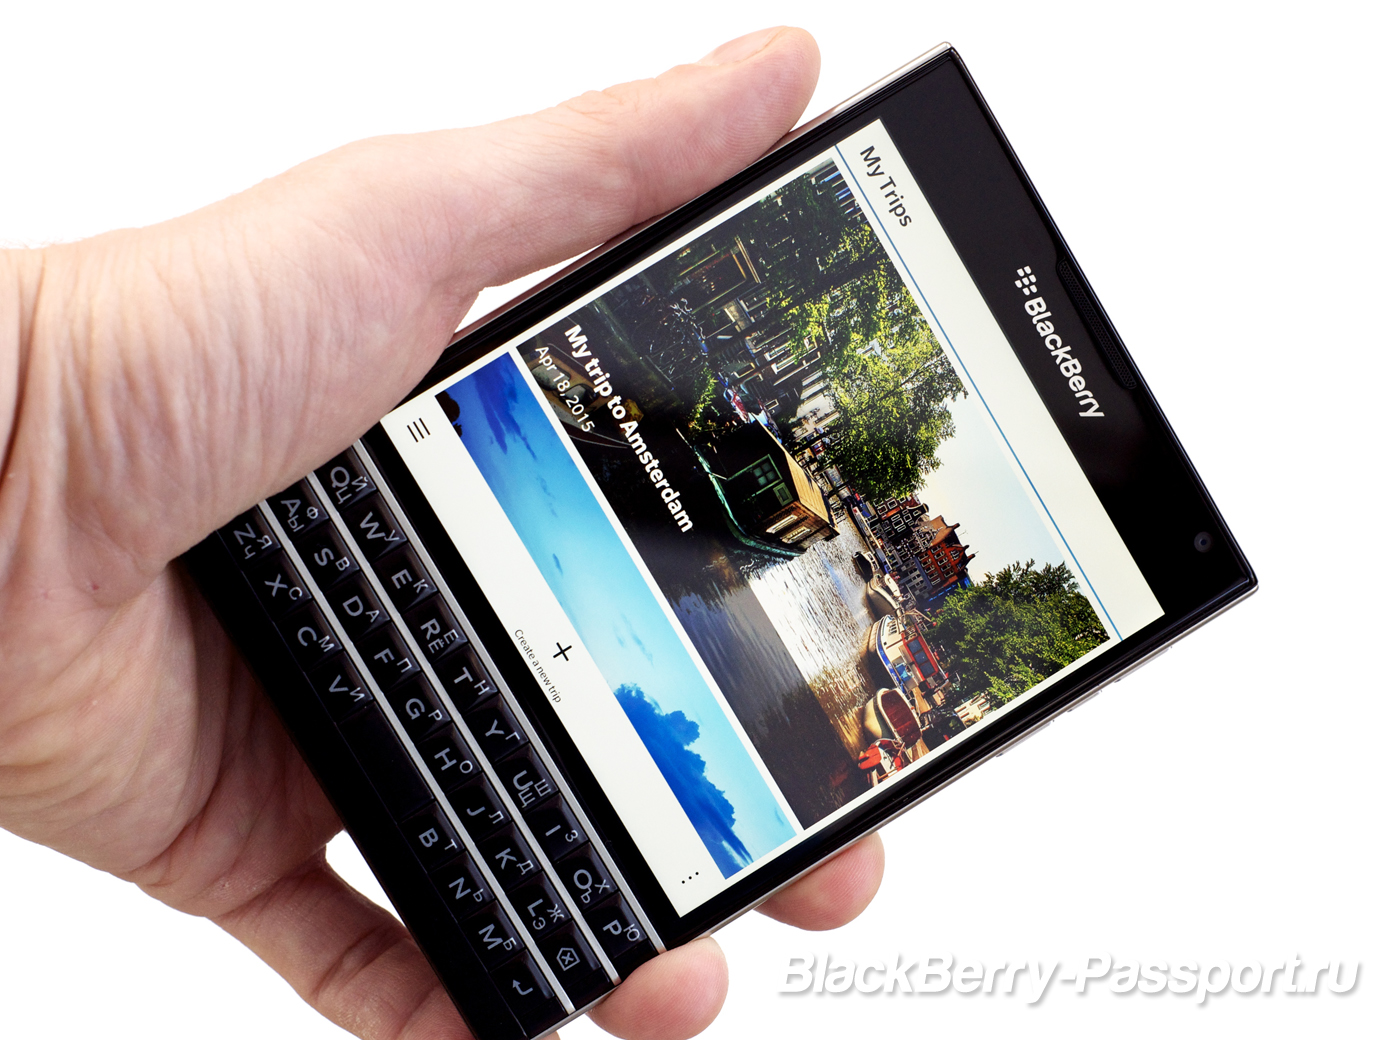 BlackBerry-Passport-Tripomatic-1